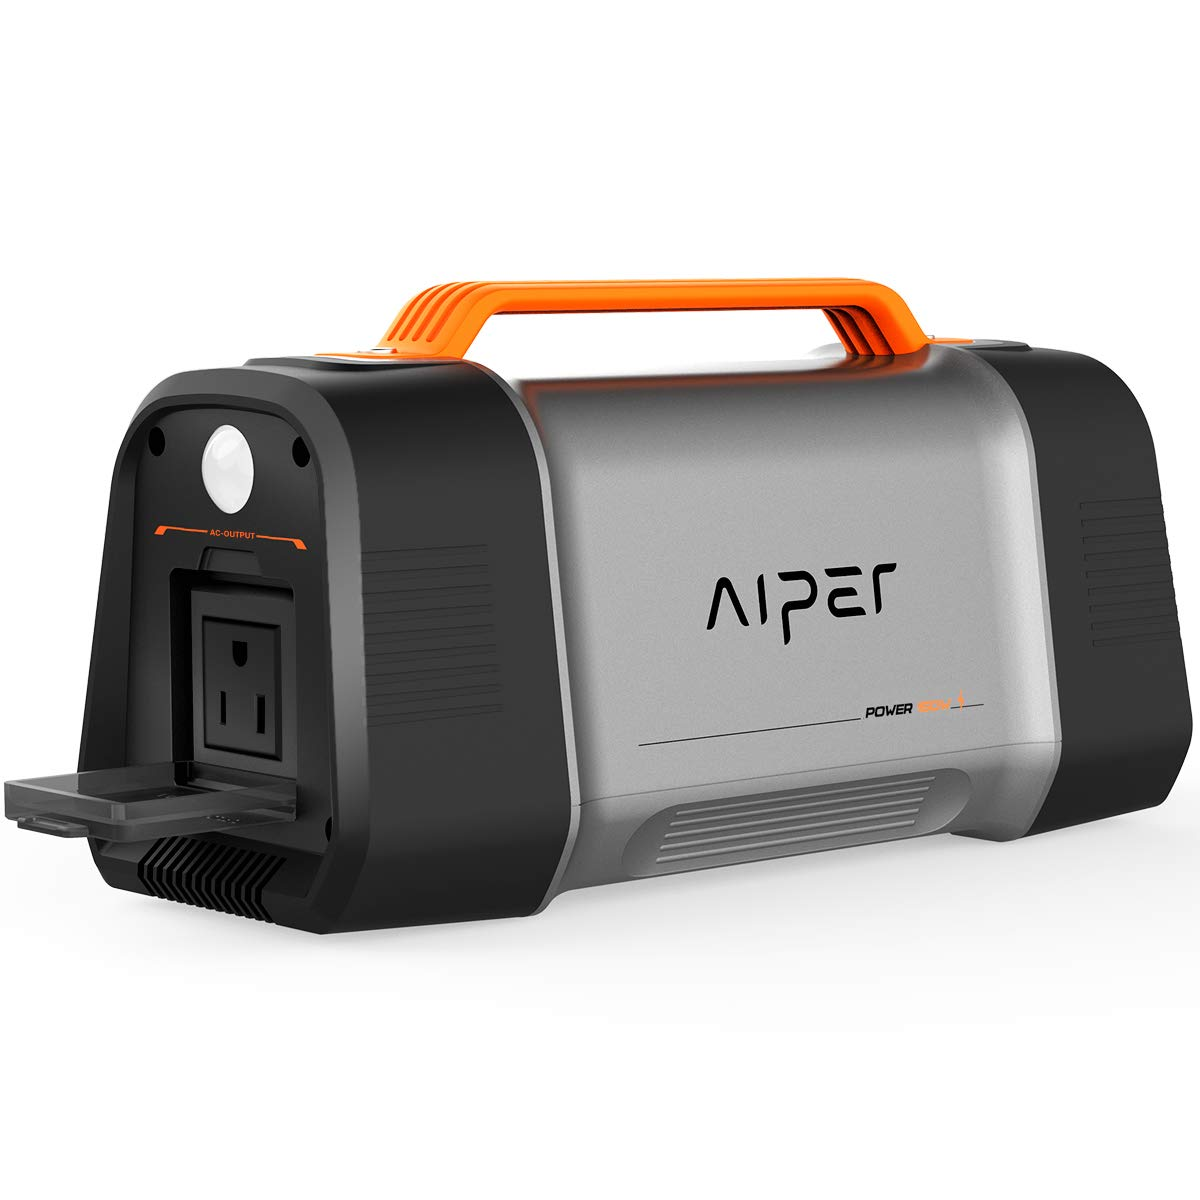 AIPER Portable Power Station Flash 150, Solar Generator 162Wh 45000mah Backup Power Supply with 110V 150W AC Outlet, Type C and QC3.0 USB Fast Charge, LED Flashlight for Outdoor Camping Emergency